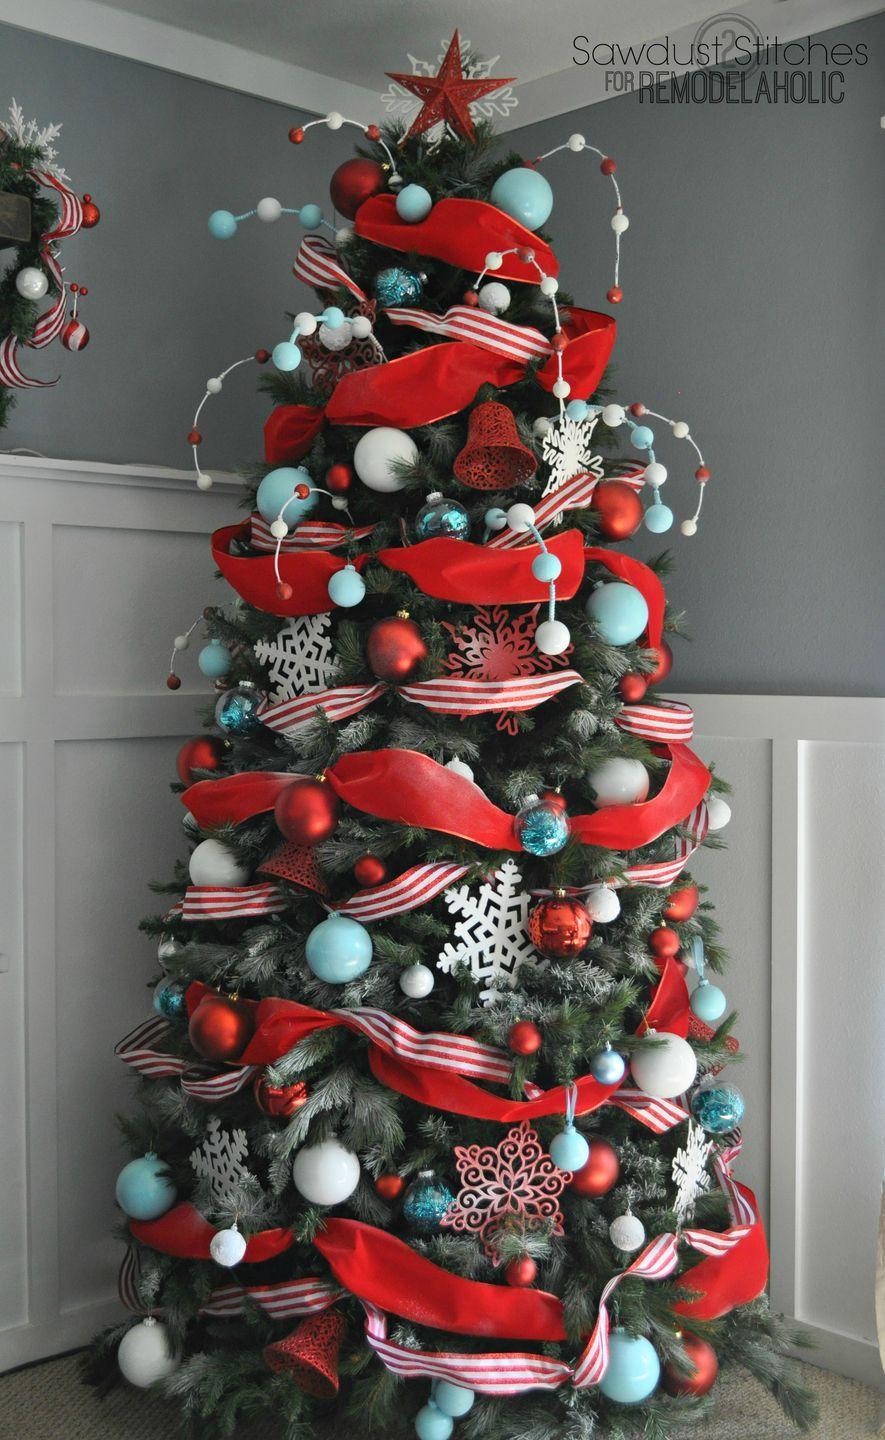 "<p>Combine a solid and striped ribbon when wrapping a skinnier tree to give it a fuller look. </p><p>See more at <a href=""http://www.remodelaholic.com/decorate-christmas-tree-designer-dollar-store/"" rel=""nofollow noopener"" target=""_blank"" data-ylk=""slk:Remodelaholic"" class=""link rapid-noclick-resp"">Remodelaholic</a>.</p><p><a class=""link rapid-noclick-resp"" href=""https://www.amazon.com/Berwick-Velvet-Ribbon-2-Inch-10-Yard/dp/B0091CHW0E/?tag=syn-yahoo-20&ascsubtag=%5Bartid%7C10057.g.505%5Bsrc%7Cyahoo-us"" rel=""nofollow noopener"" target=""_blank"" data-ylk=""slk:SHOP RIBBON"">SHOP RIBBON</a> <em><strong>Red Ribbon, $12</strong></em></p>"